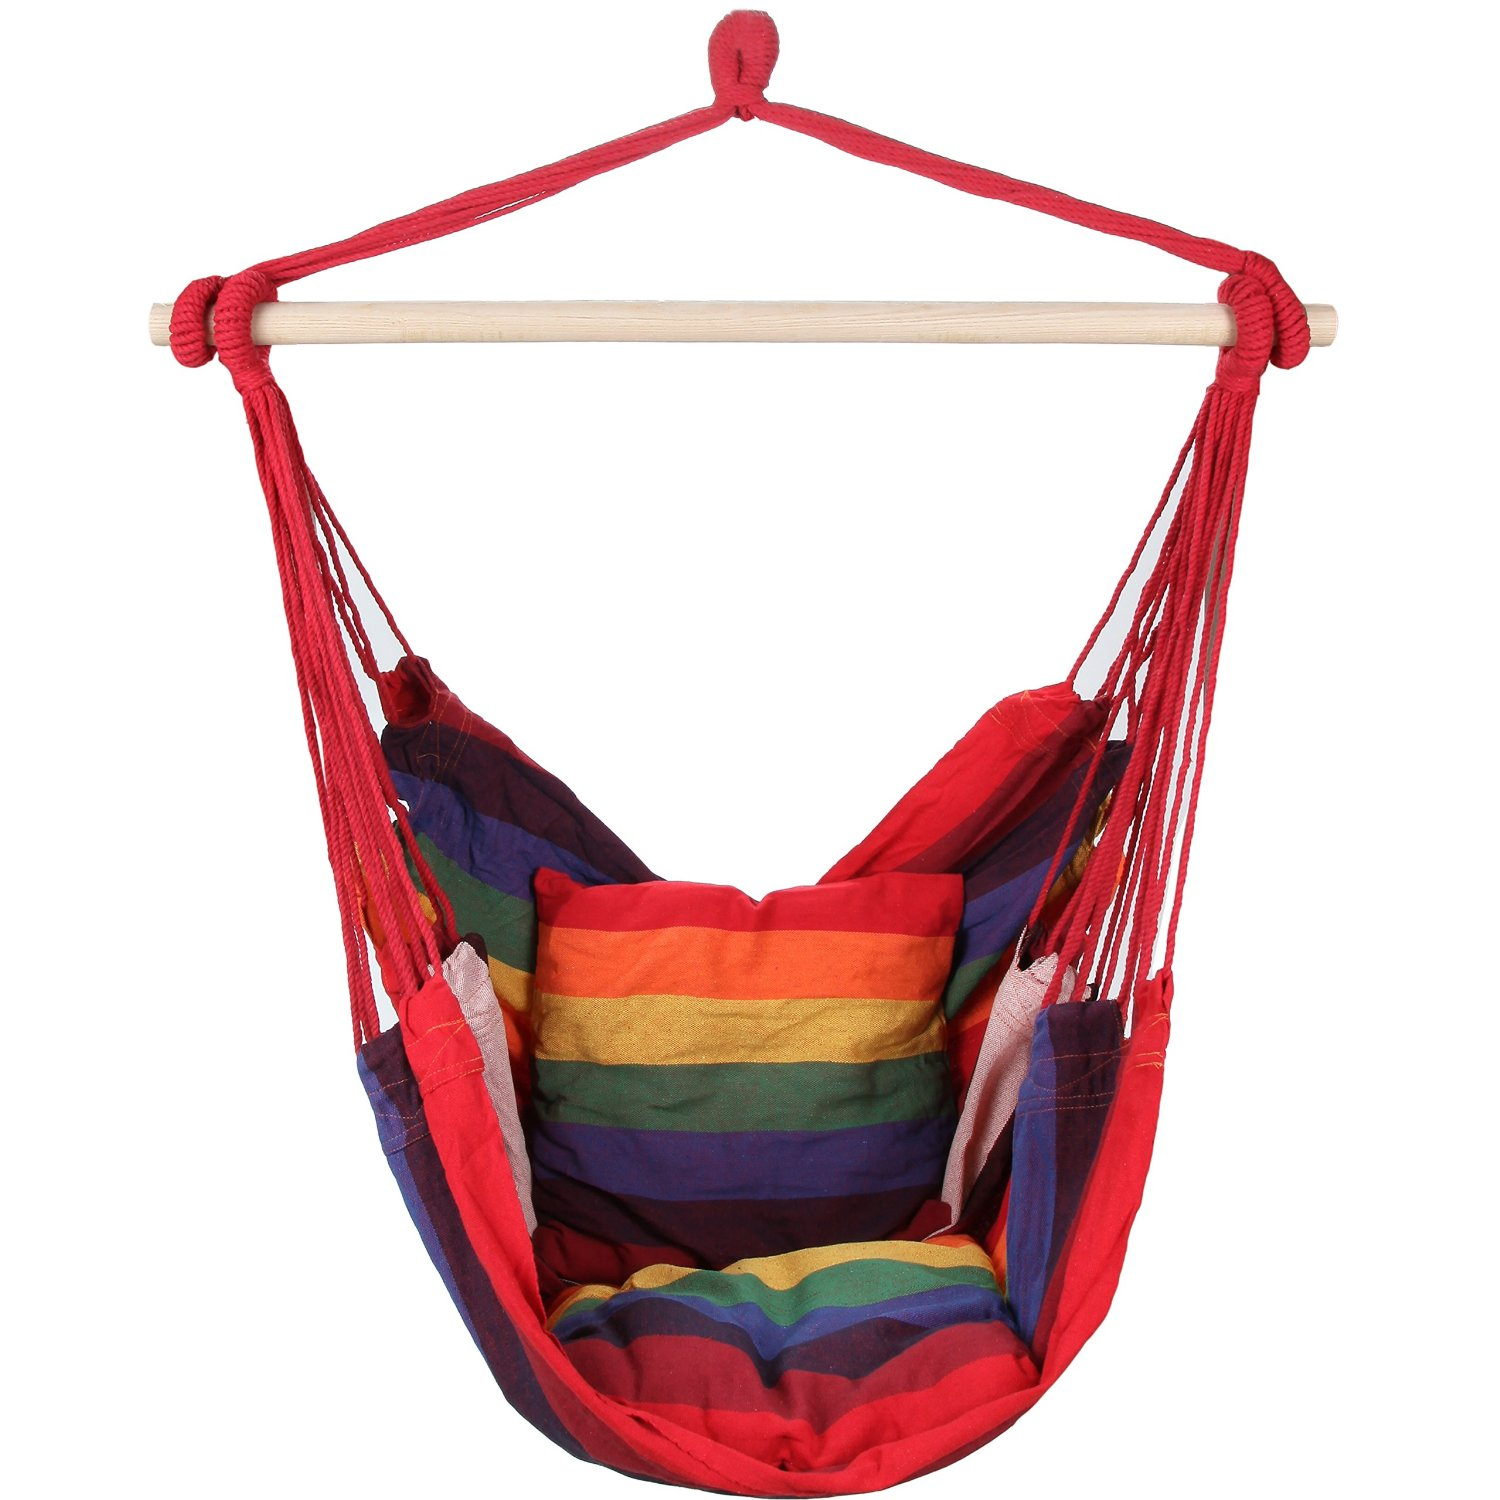 swingasan chair with red strap and colorful cushion ideas